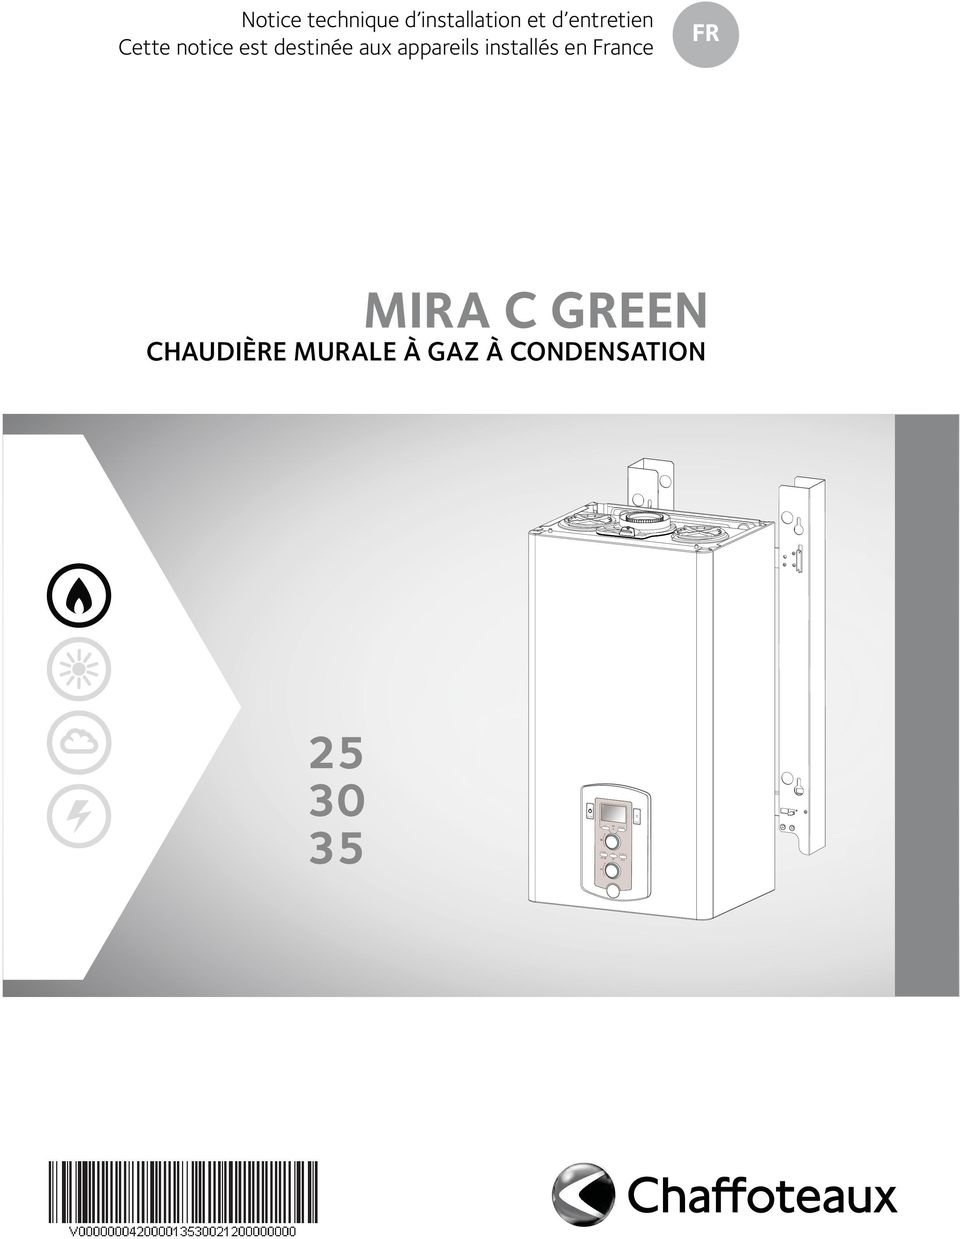 Chaffoteaux chaudiere murale gaz zoom with chaffoteaux - Chaffoteaux mira c green ...